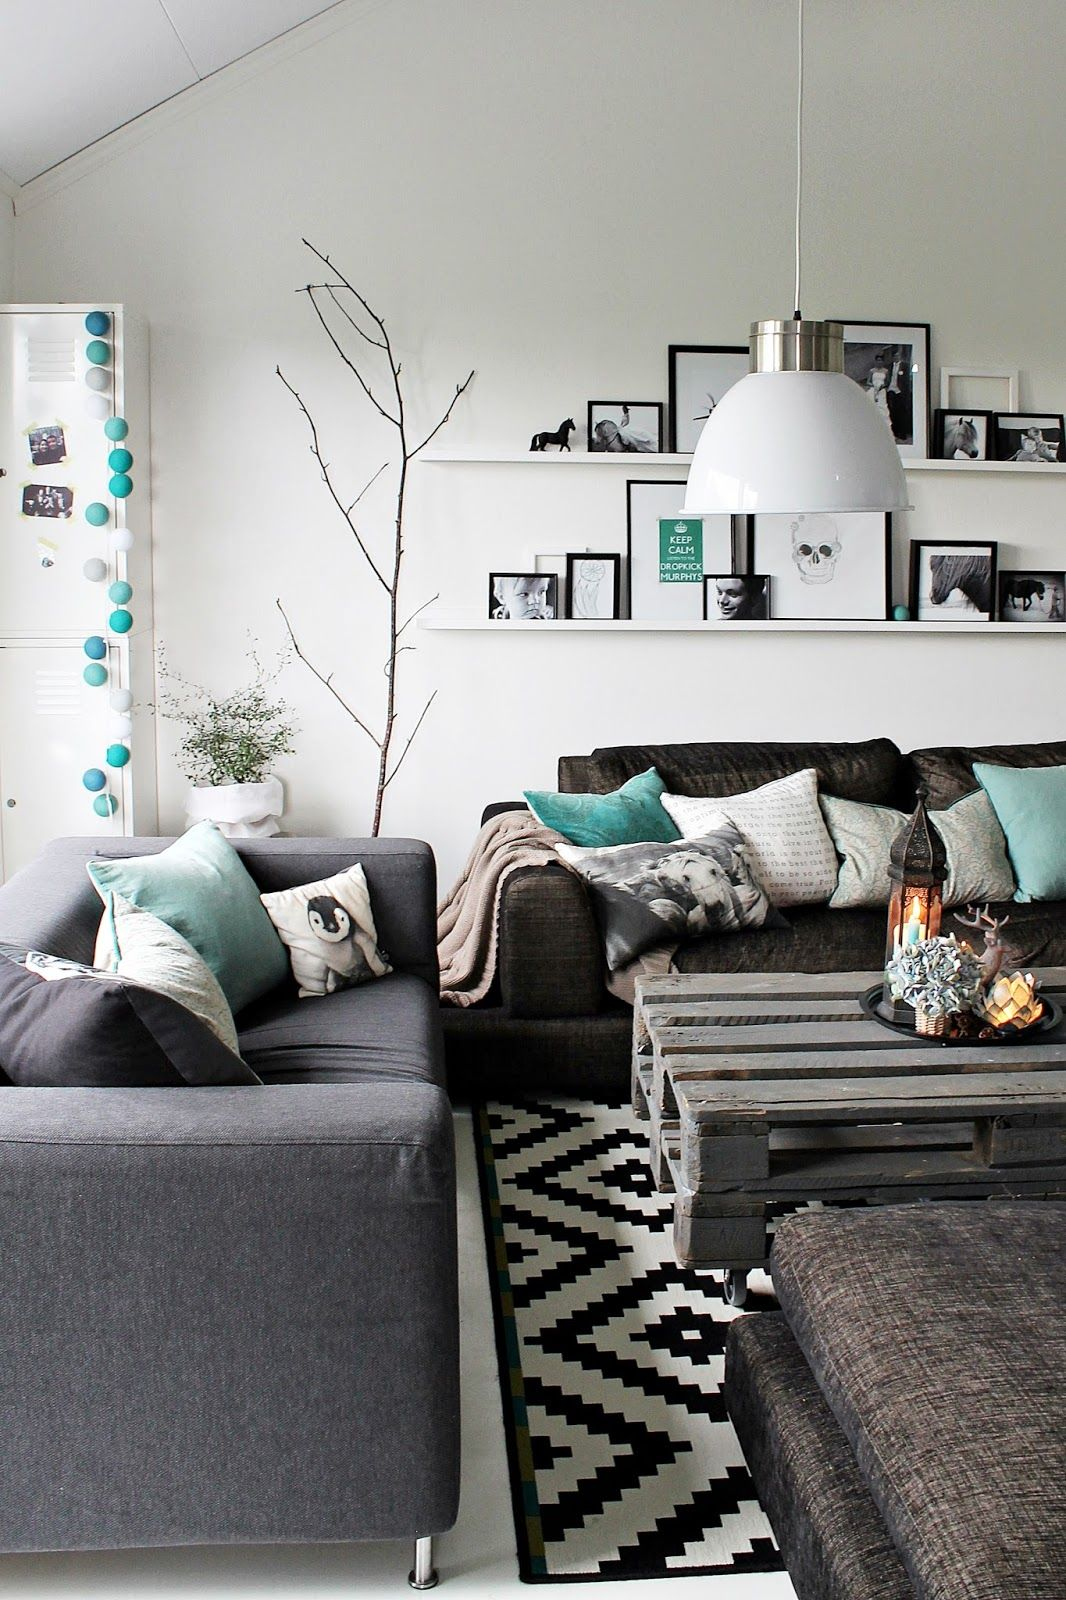 furniturearranging mistakes that are sabotaging your home and